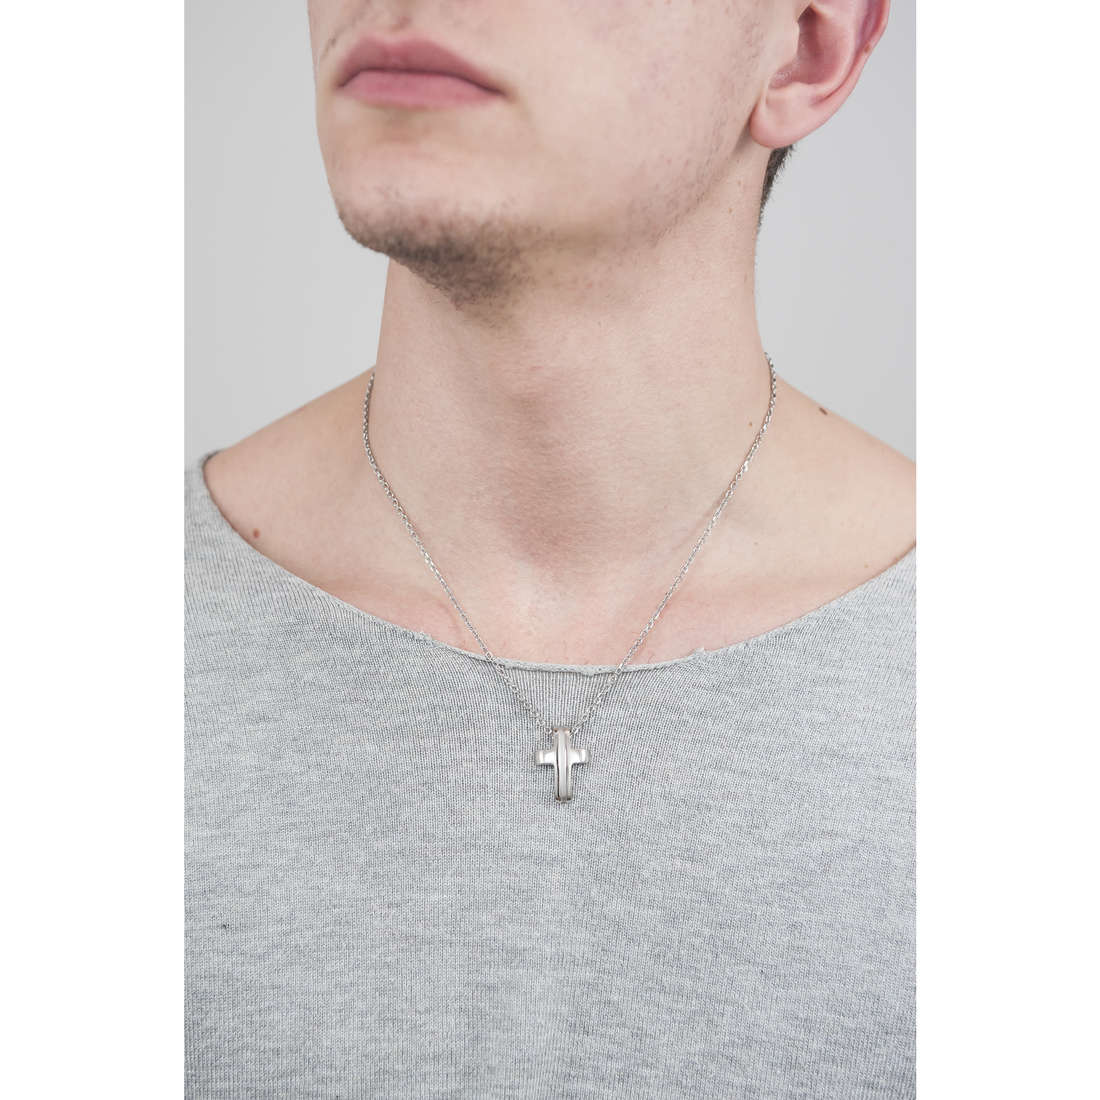 Brosway necklaces Medieval man BMV01 photo wearing